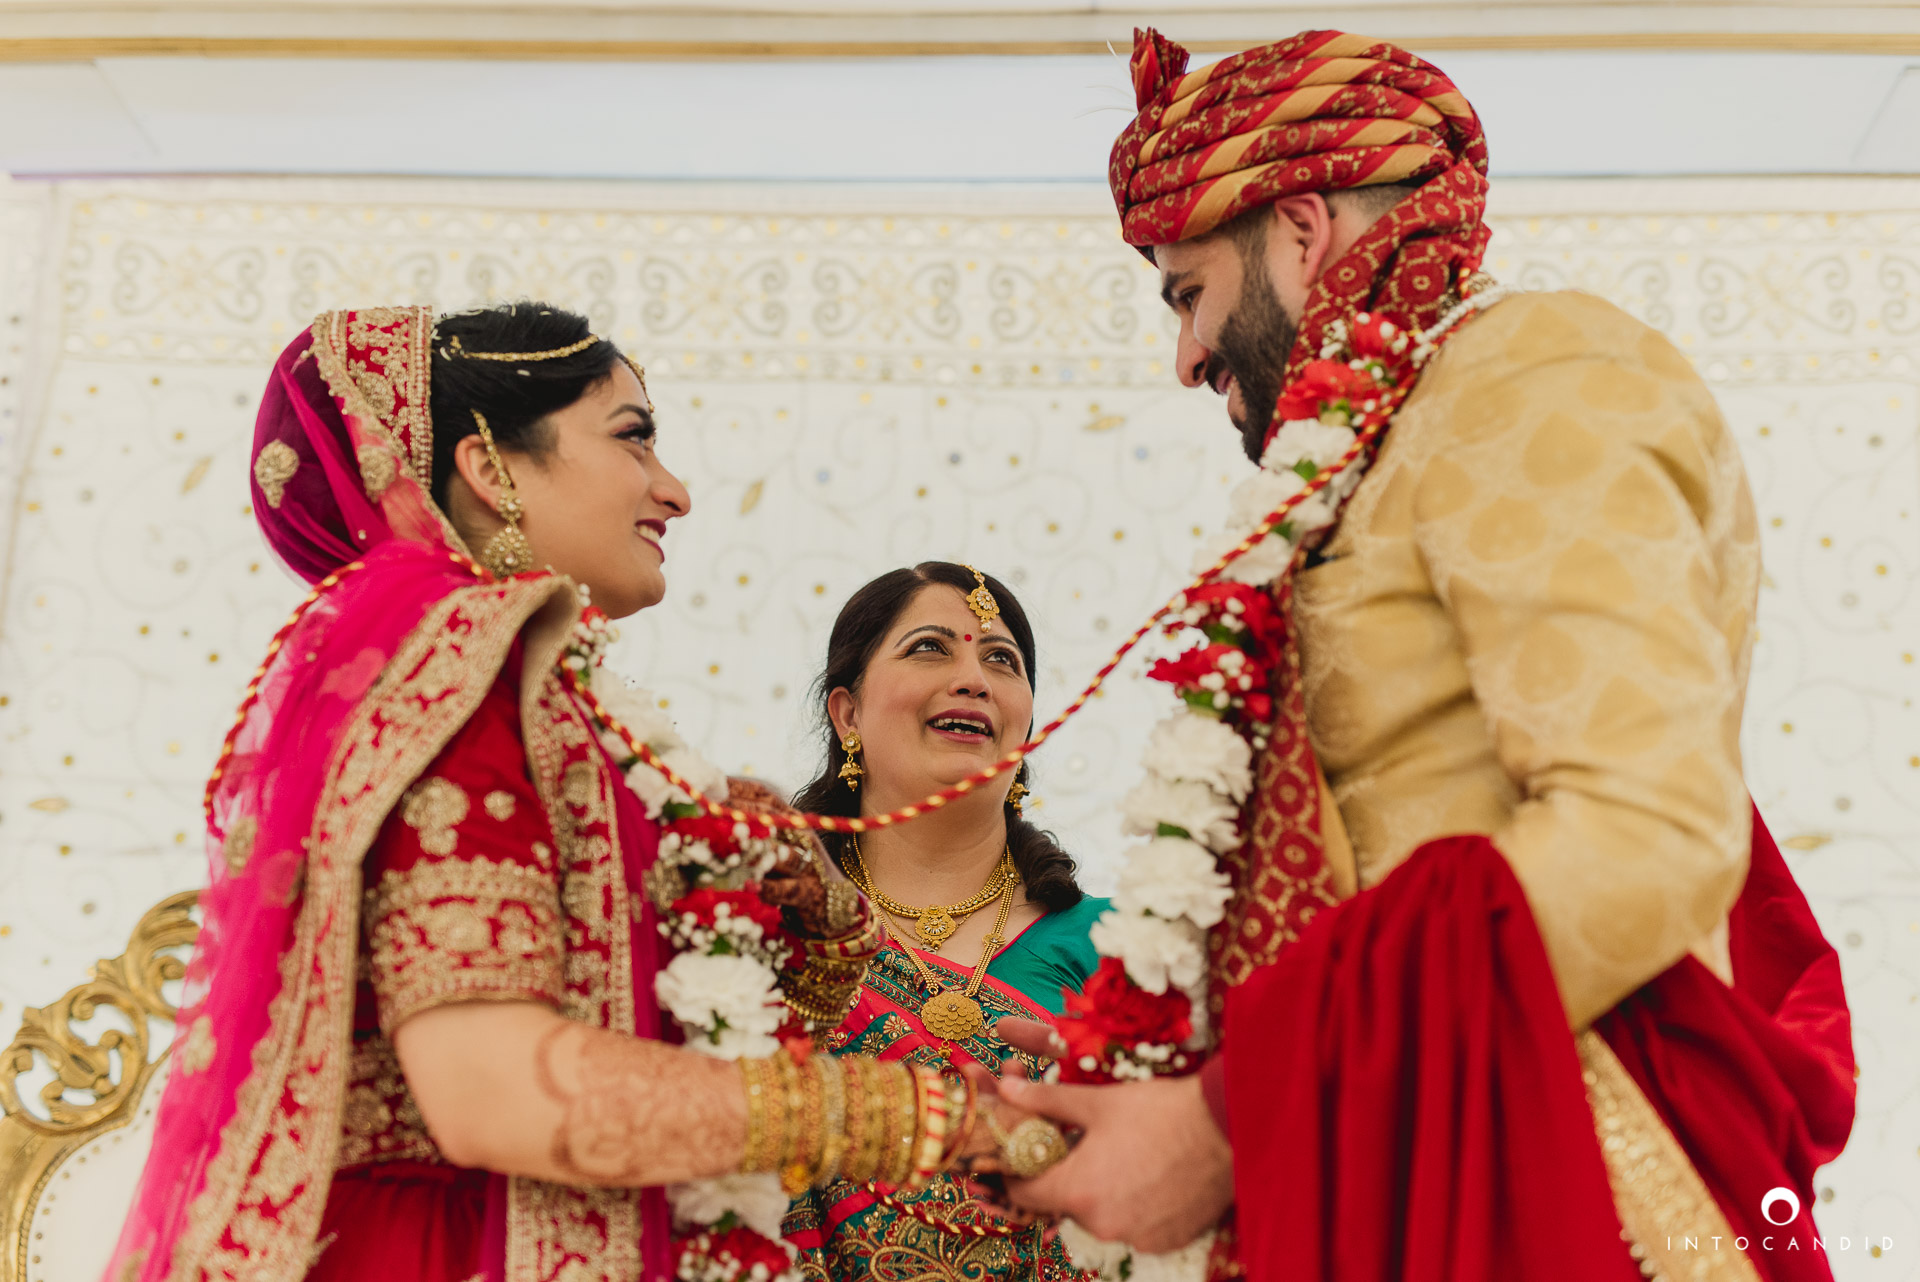 London_Wedding_Photographer_Intocandid_Photography_Ketan & Manasvi_48.JPG